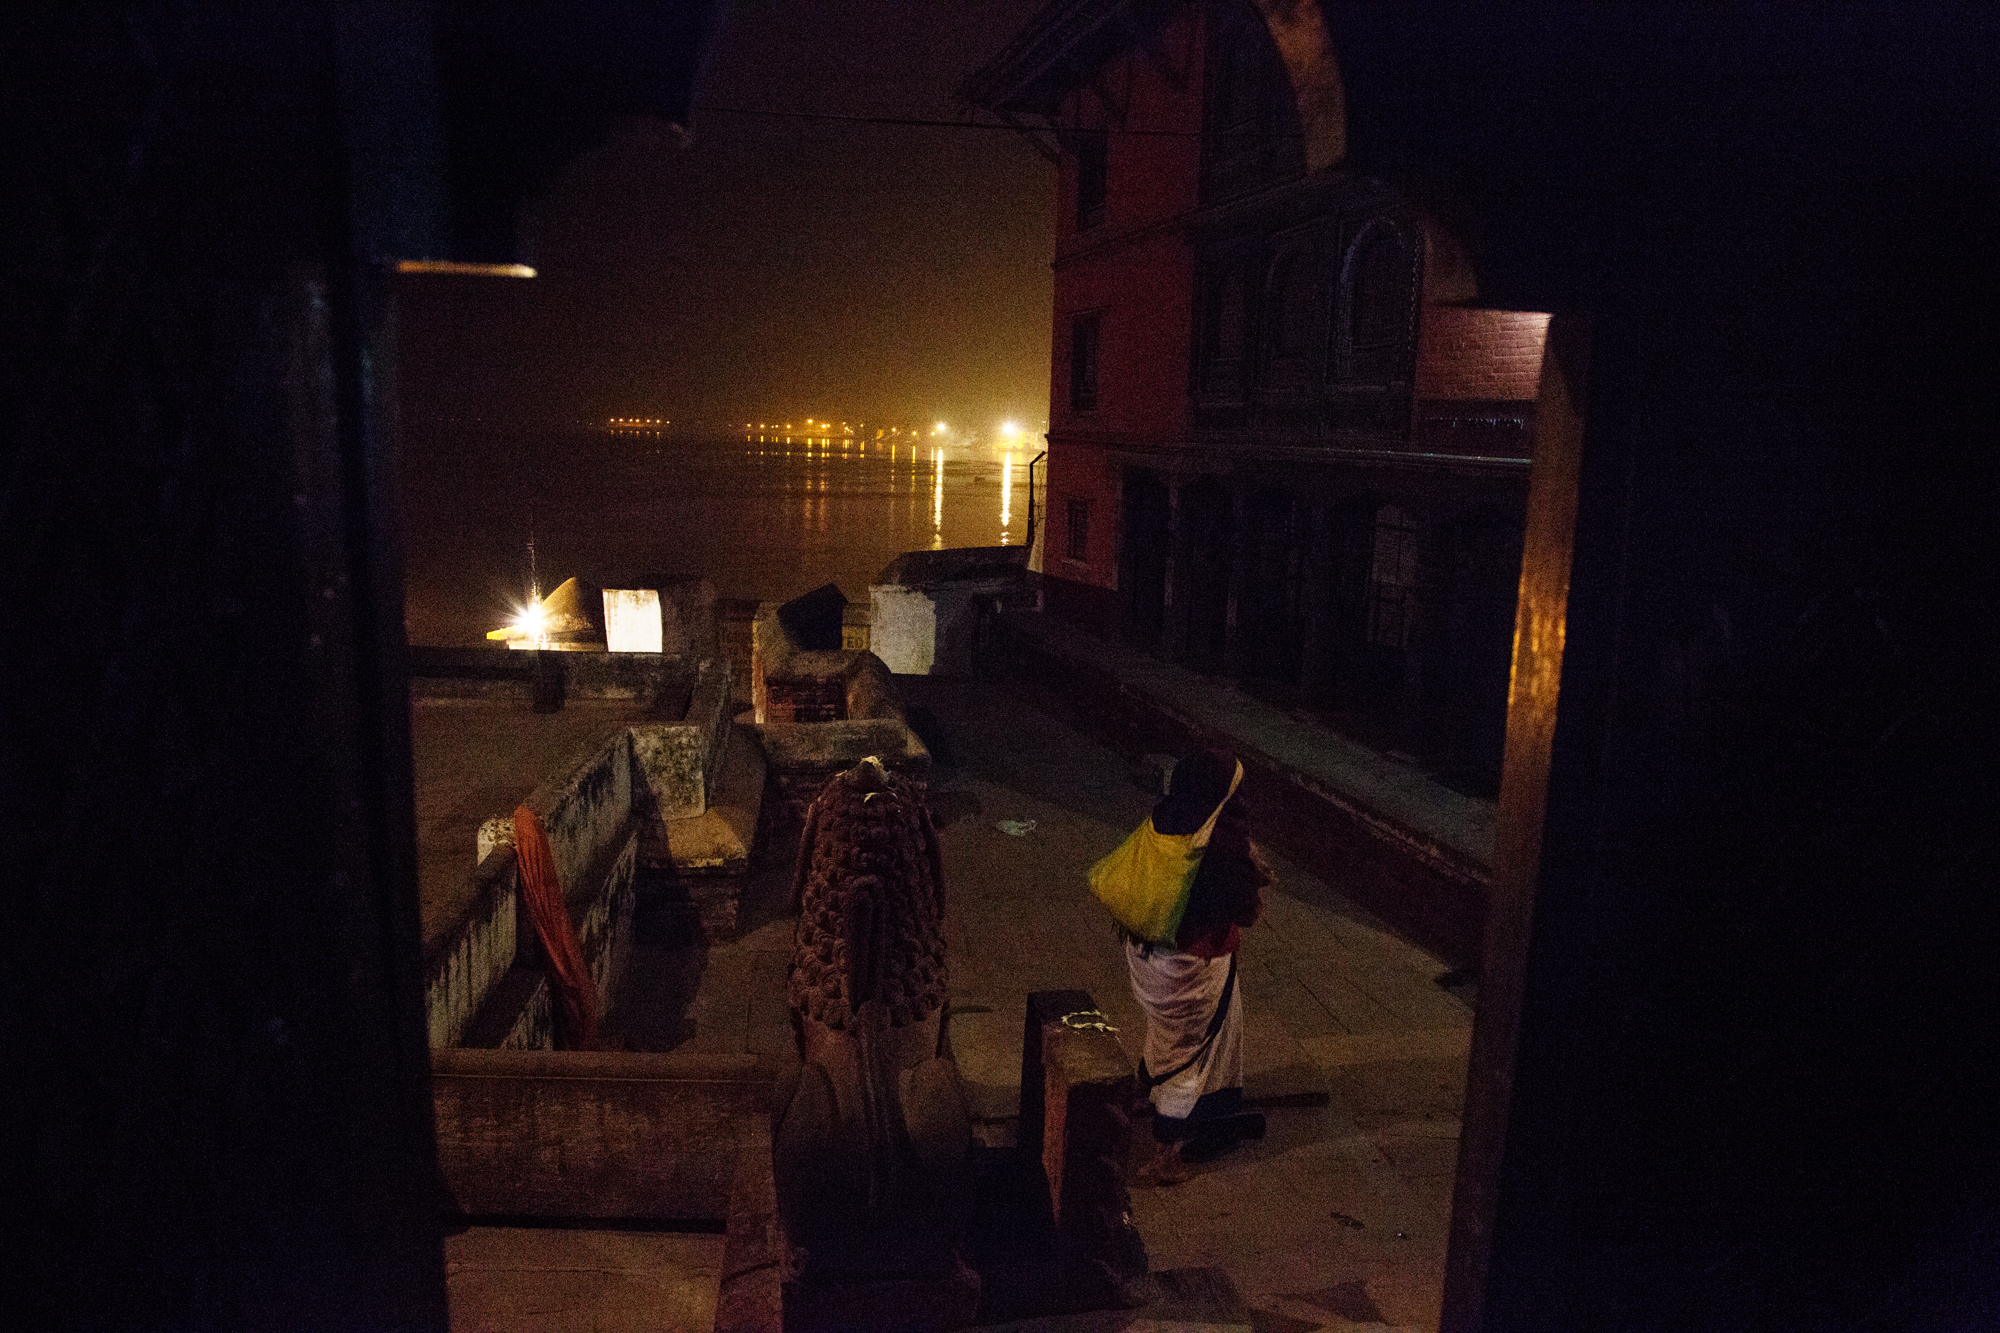 A woman leaves the temple to return to the ashram after evening Aarti.